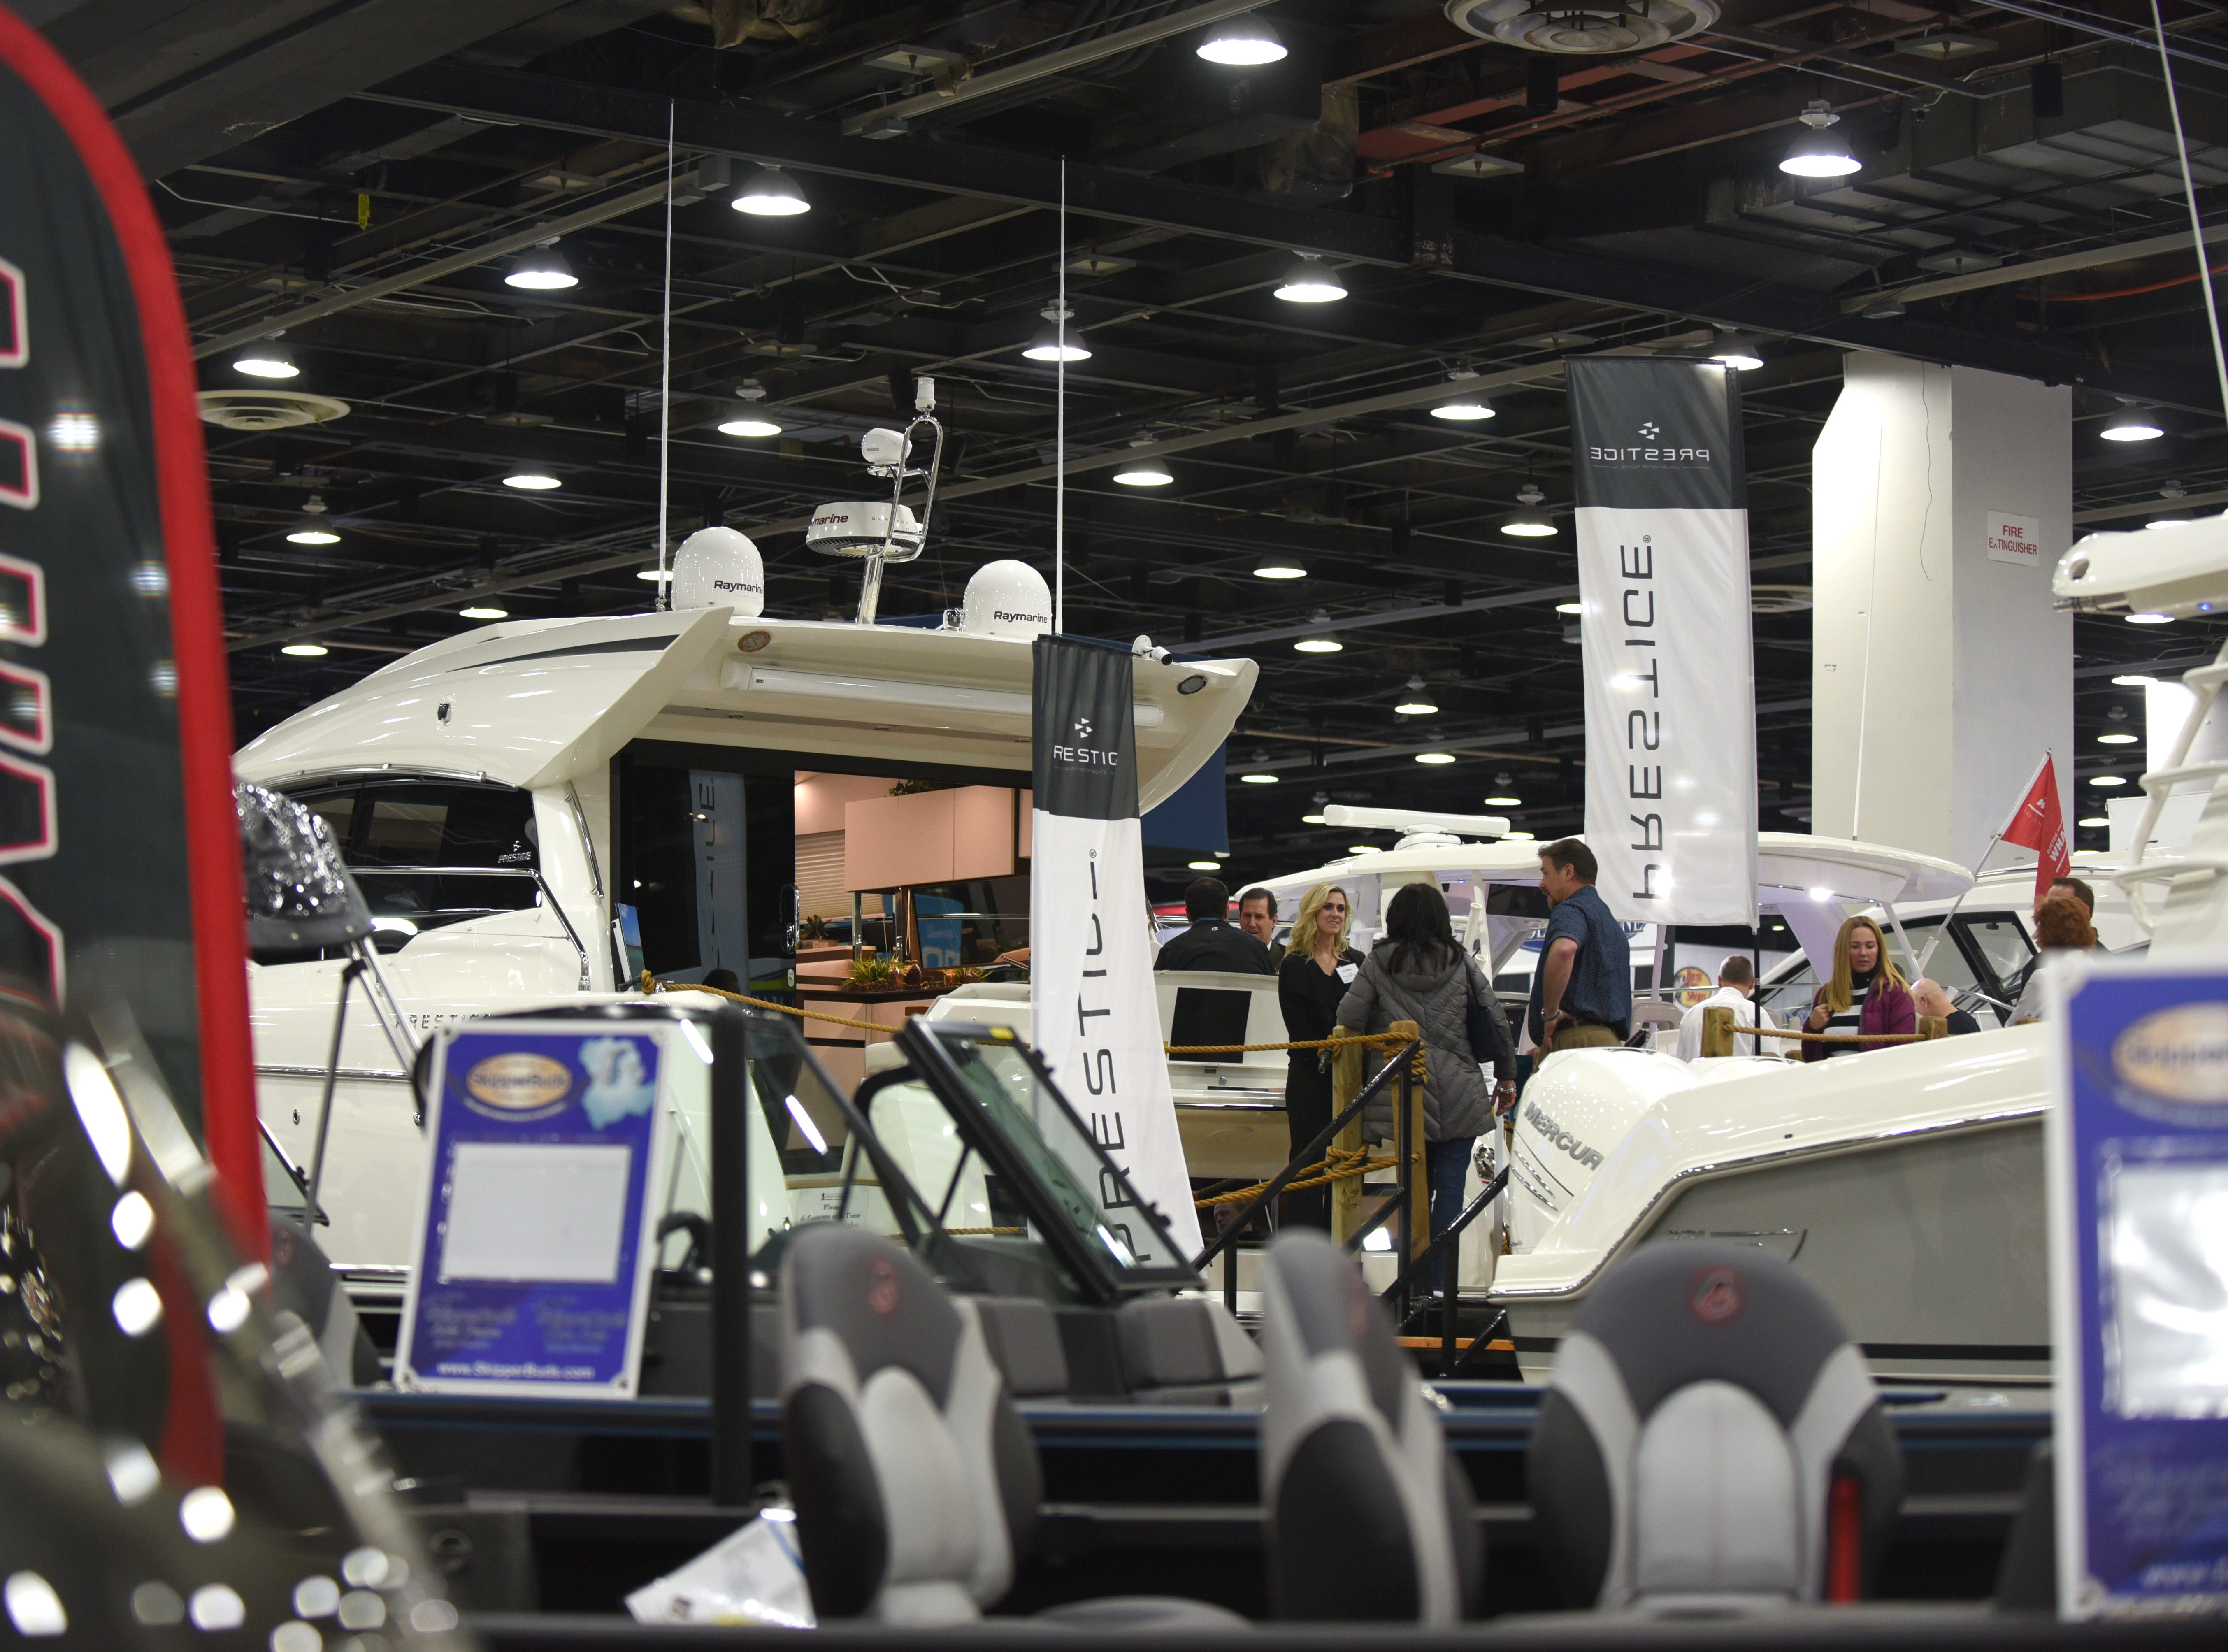 People board pleasure boats on display at the Detroit Boat Show at Cobo Center.